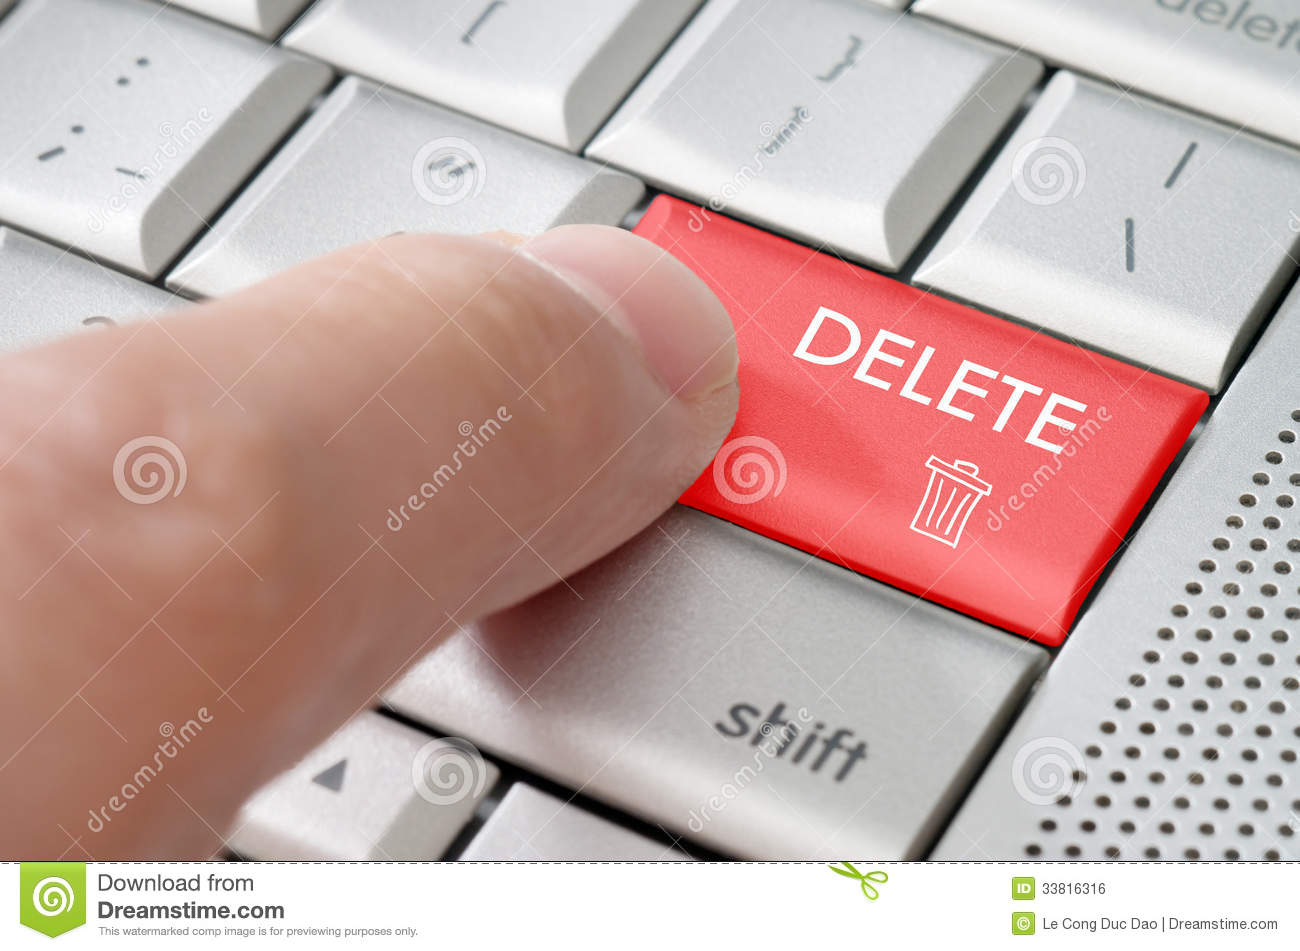 how to delete by keyboard